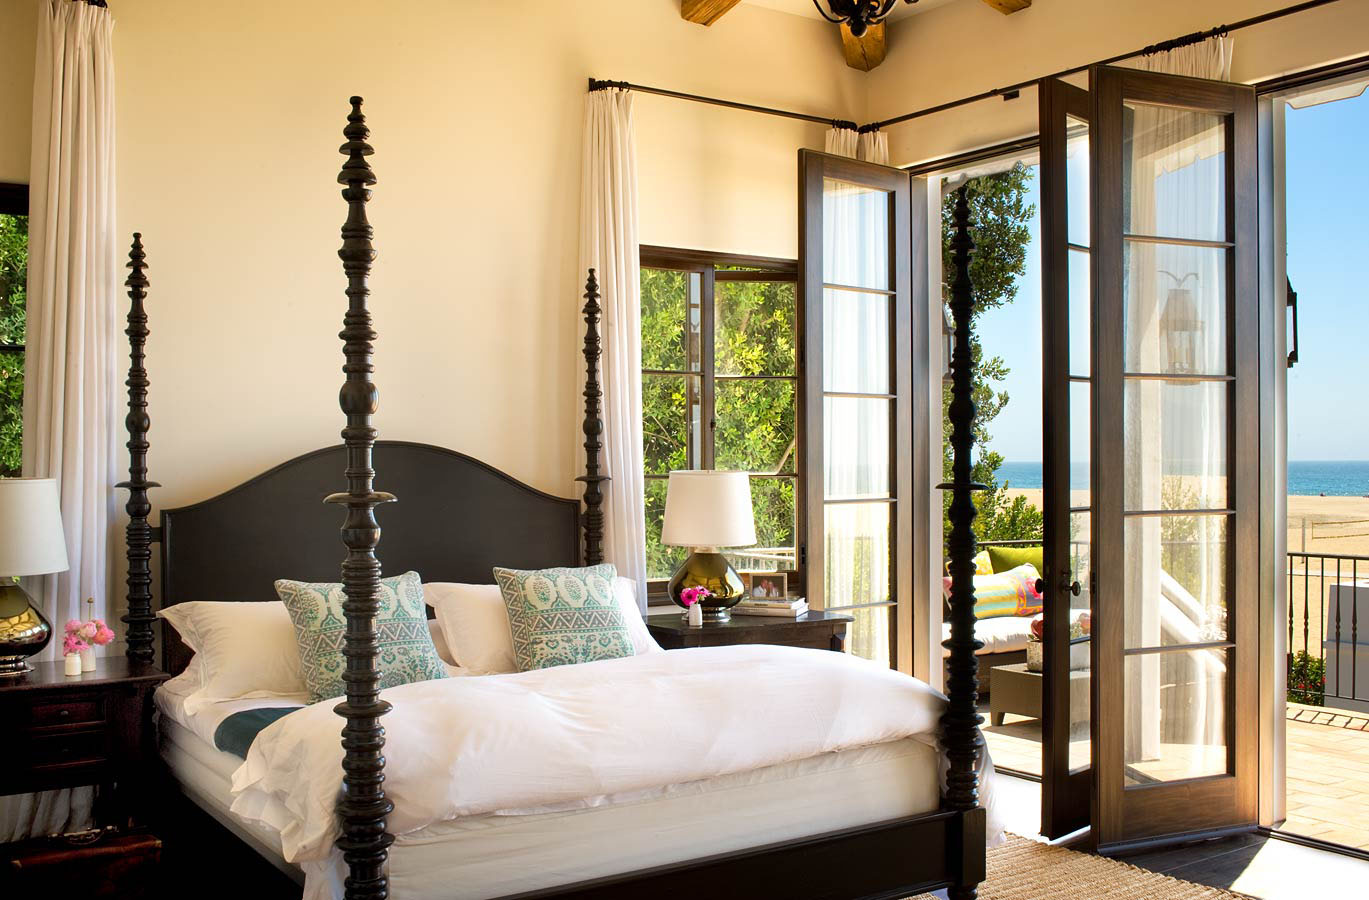 Spanish colonial beach house in santa monica idesignarch for Mediterranean style bedroom furniture